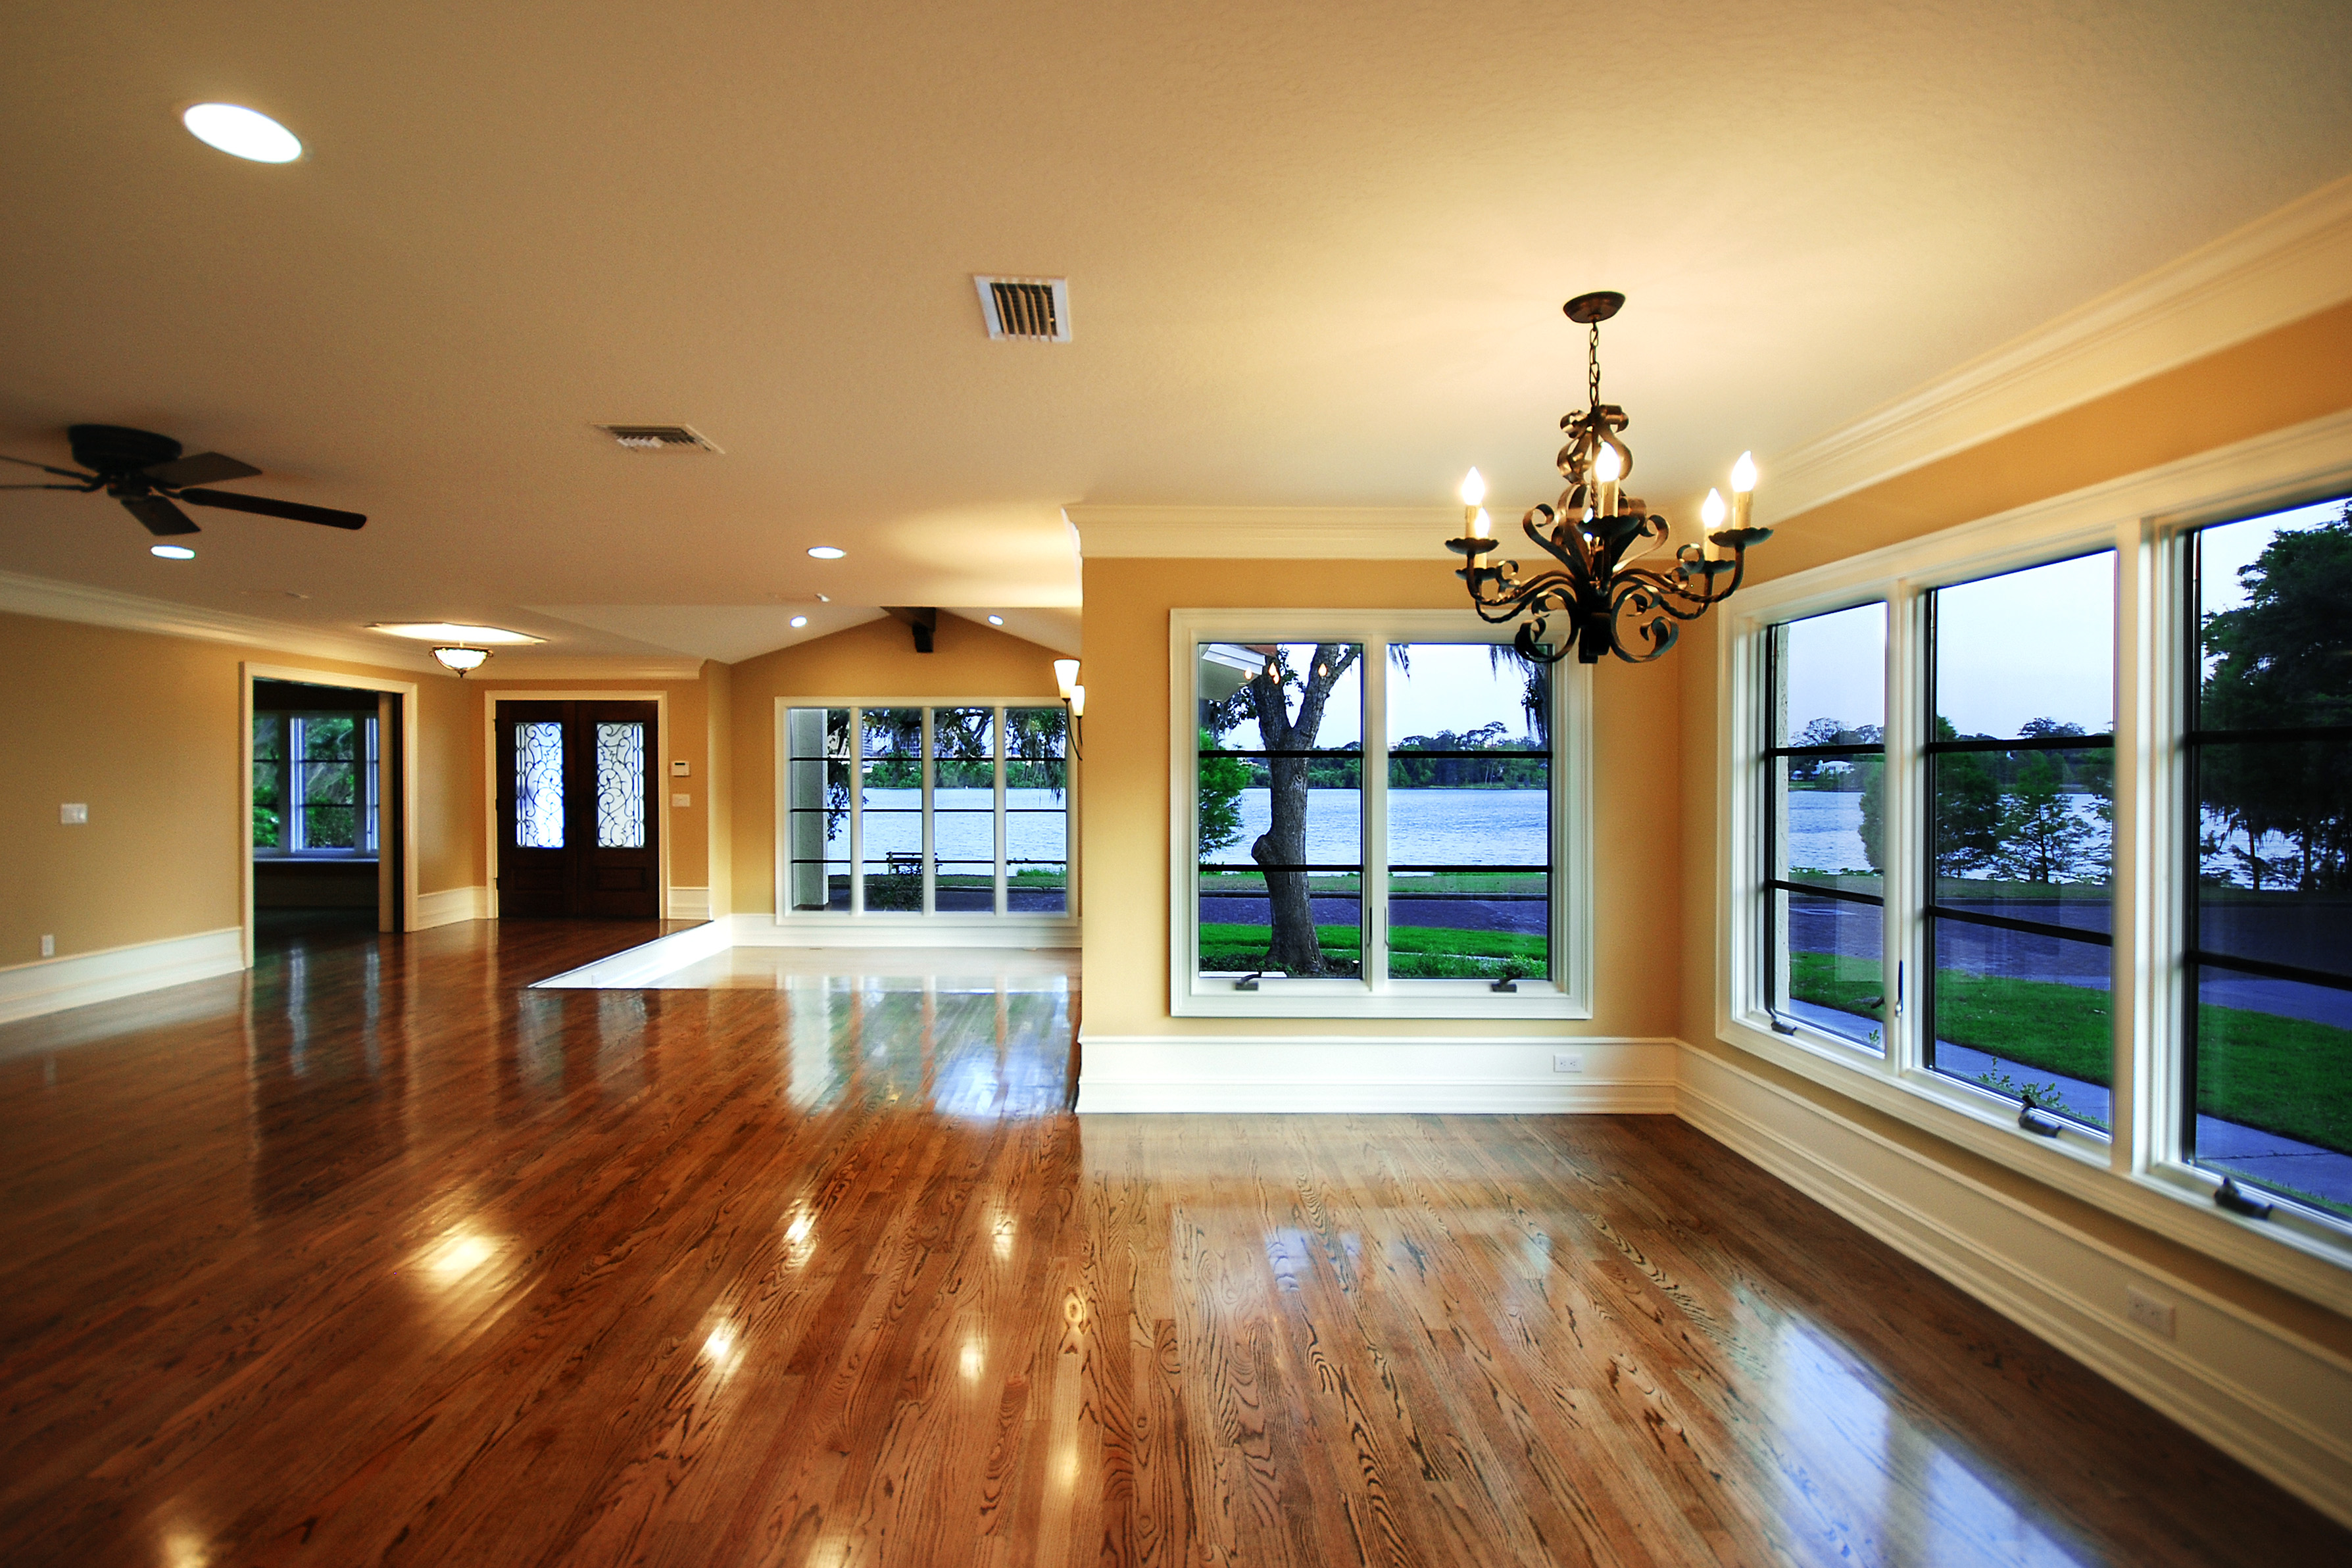 central florida home remodeling interior renovation photos